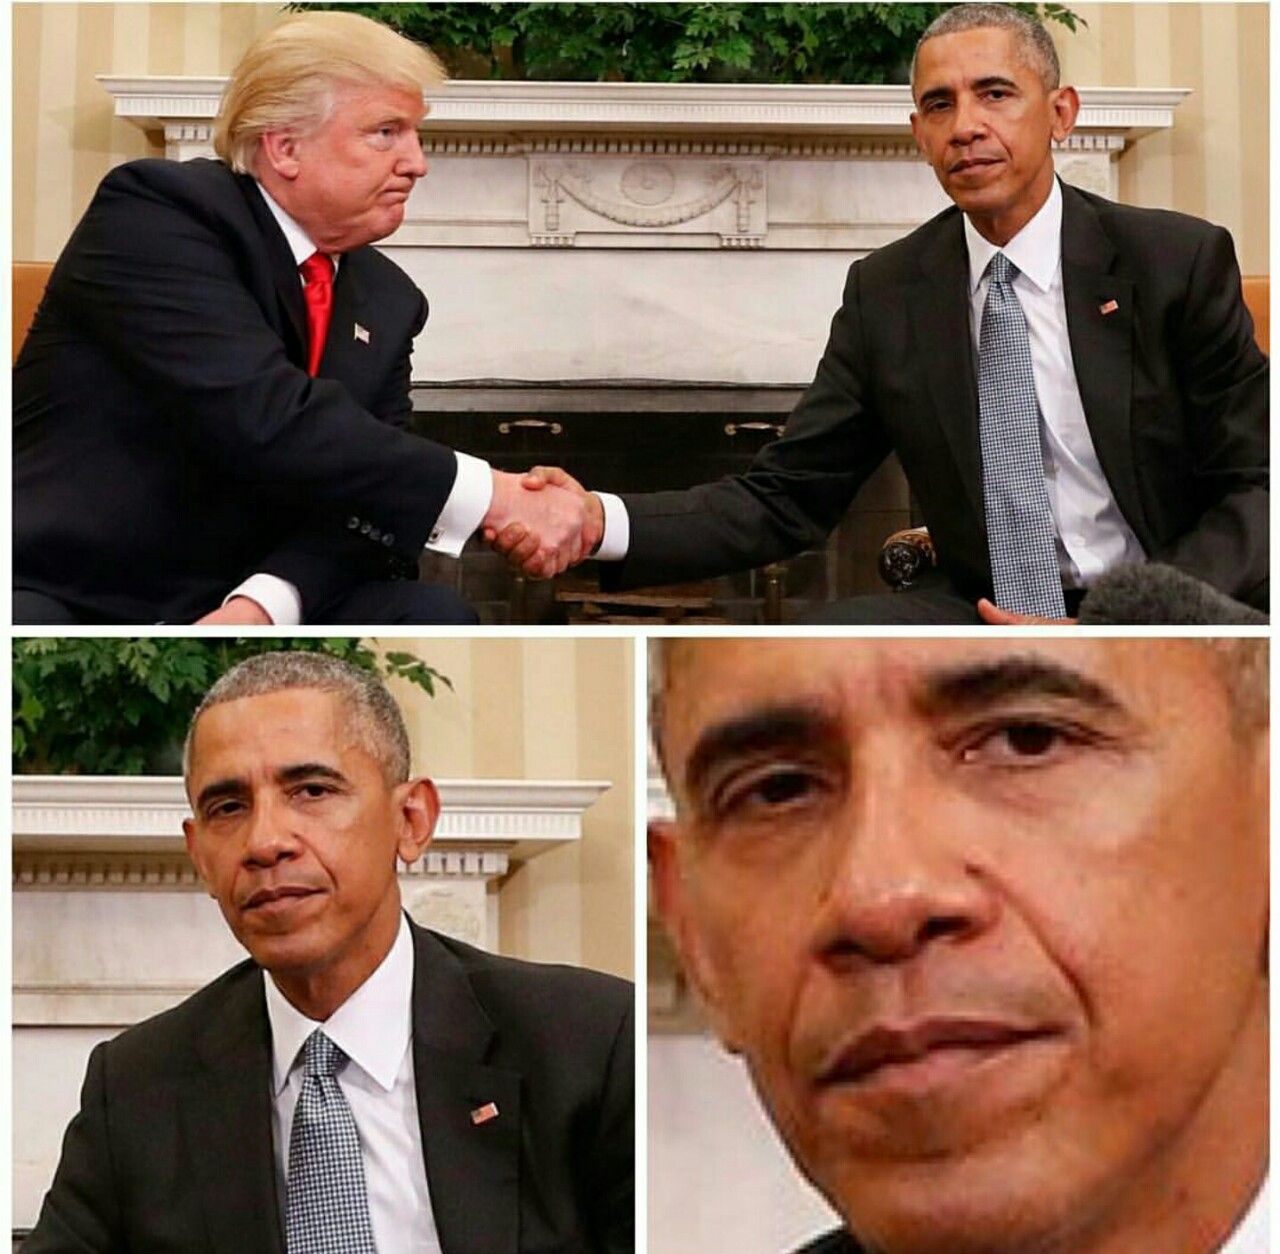 Which is Donald Trump's best Handshake of four? | With Obama